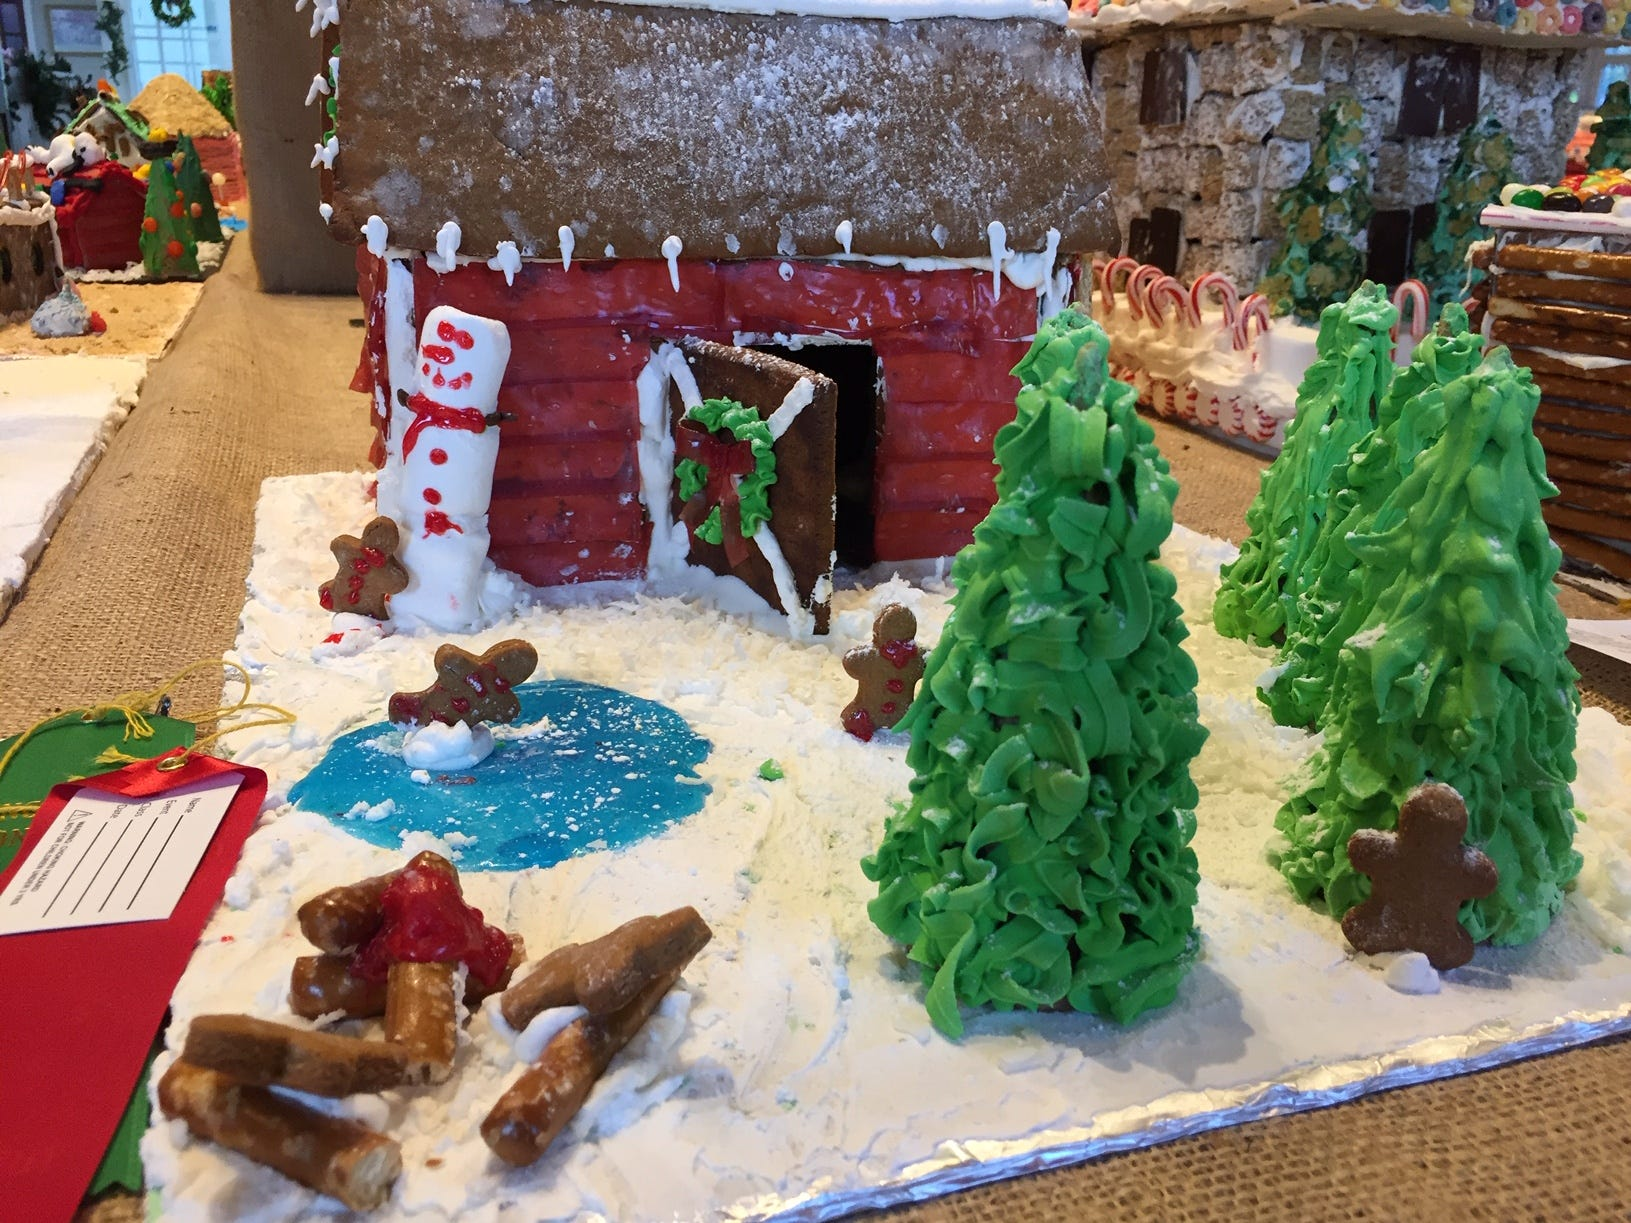 """Evergreen Christmas Tree Farm"" by Hazel Klouse of Lincoln Park, fourth grade, at the Gingerbread Wonderland at the Frelinghuysen Arboretum. Child category."